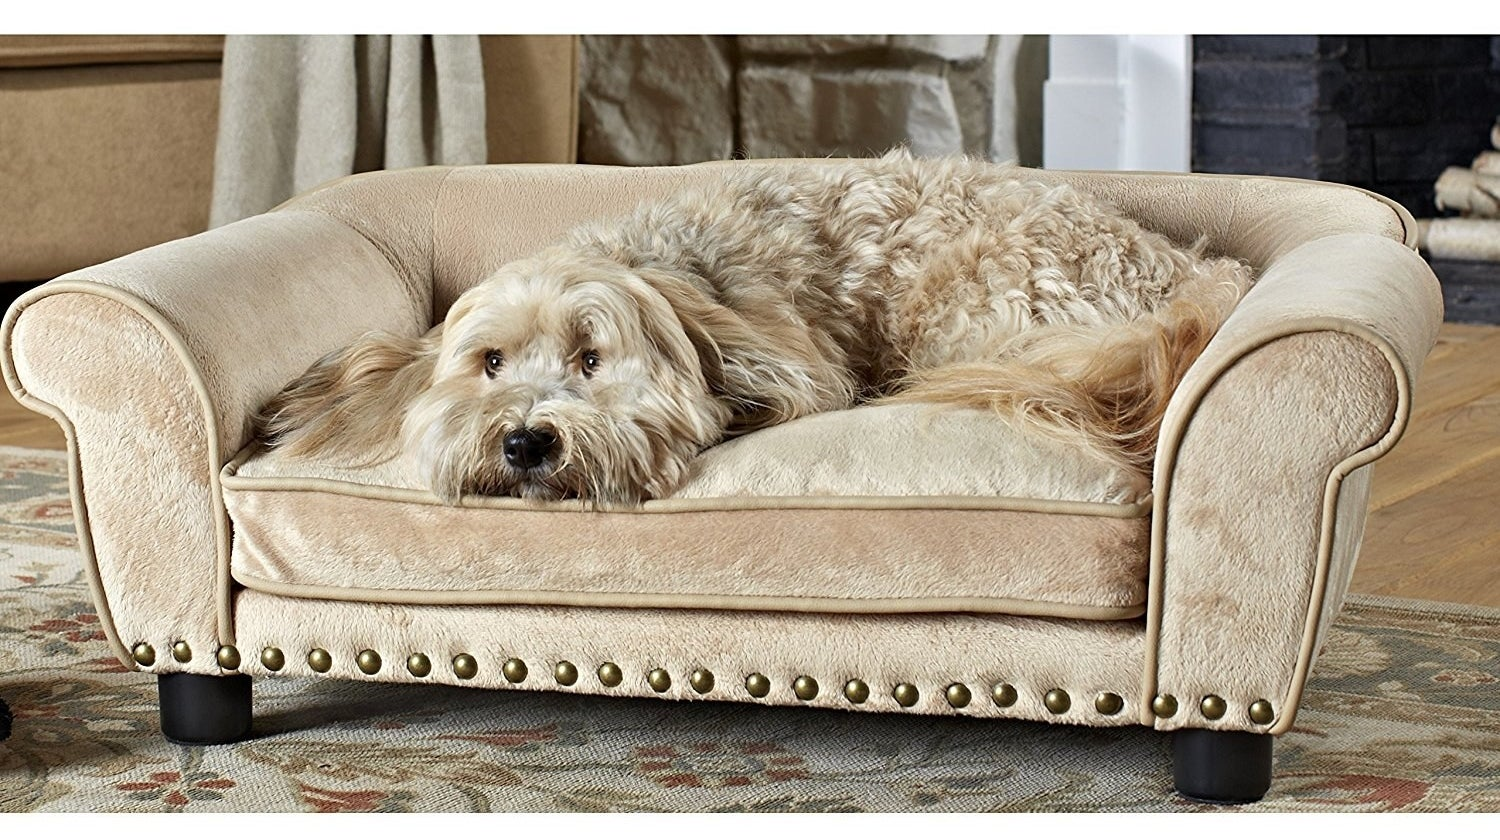 And a sophisticated sofa pet bed for your furbaby, who's living *the life* right alongside you.